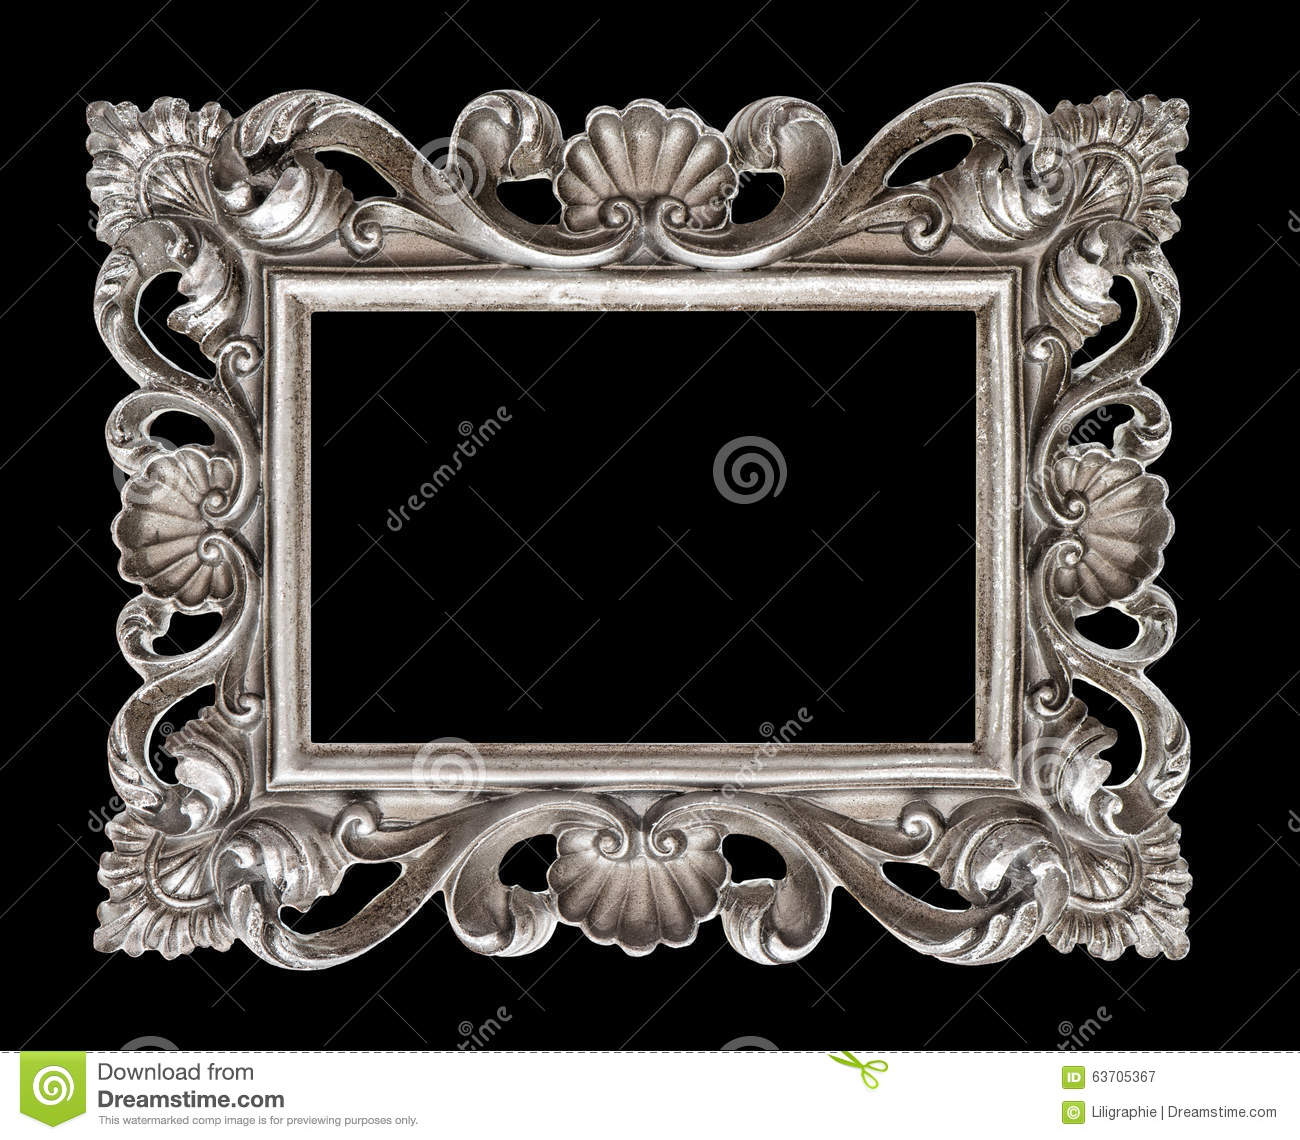 Vintage Silver Baroque Style Picture Frame Isolated Over